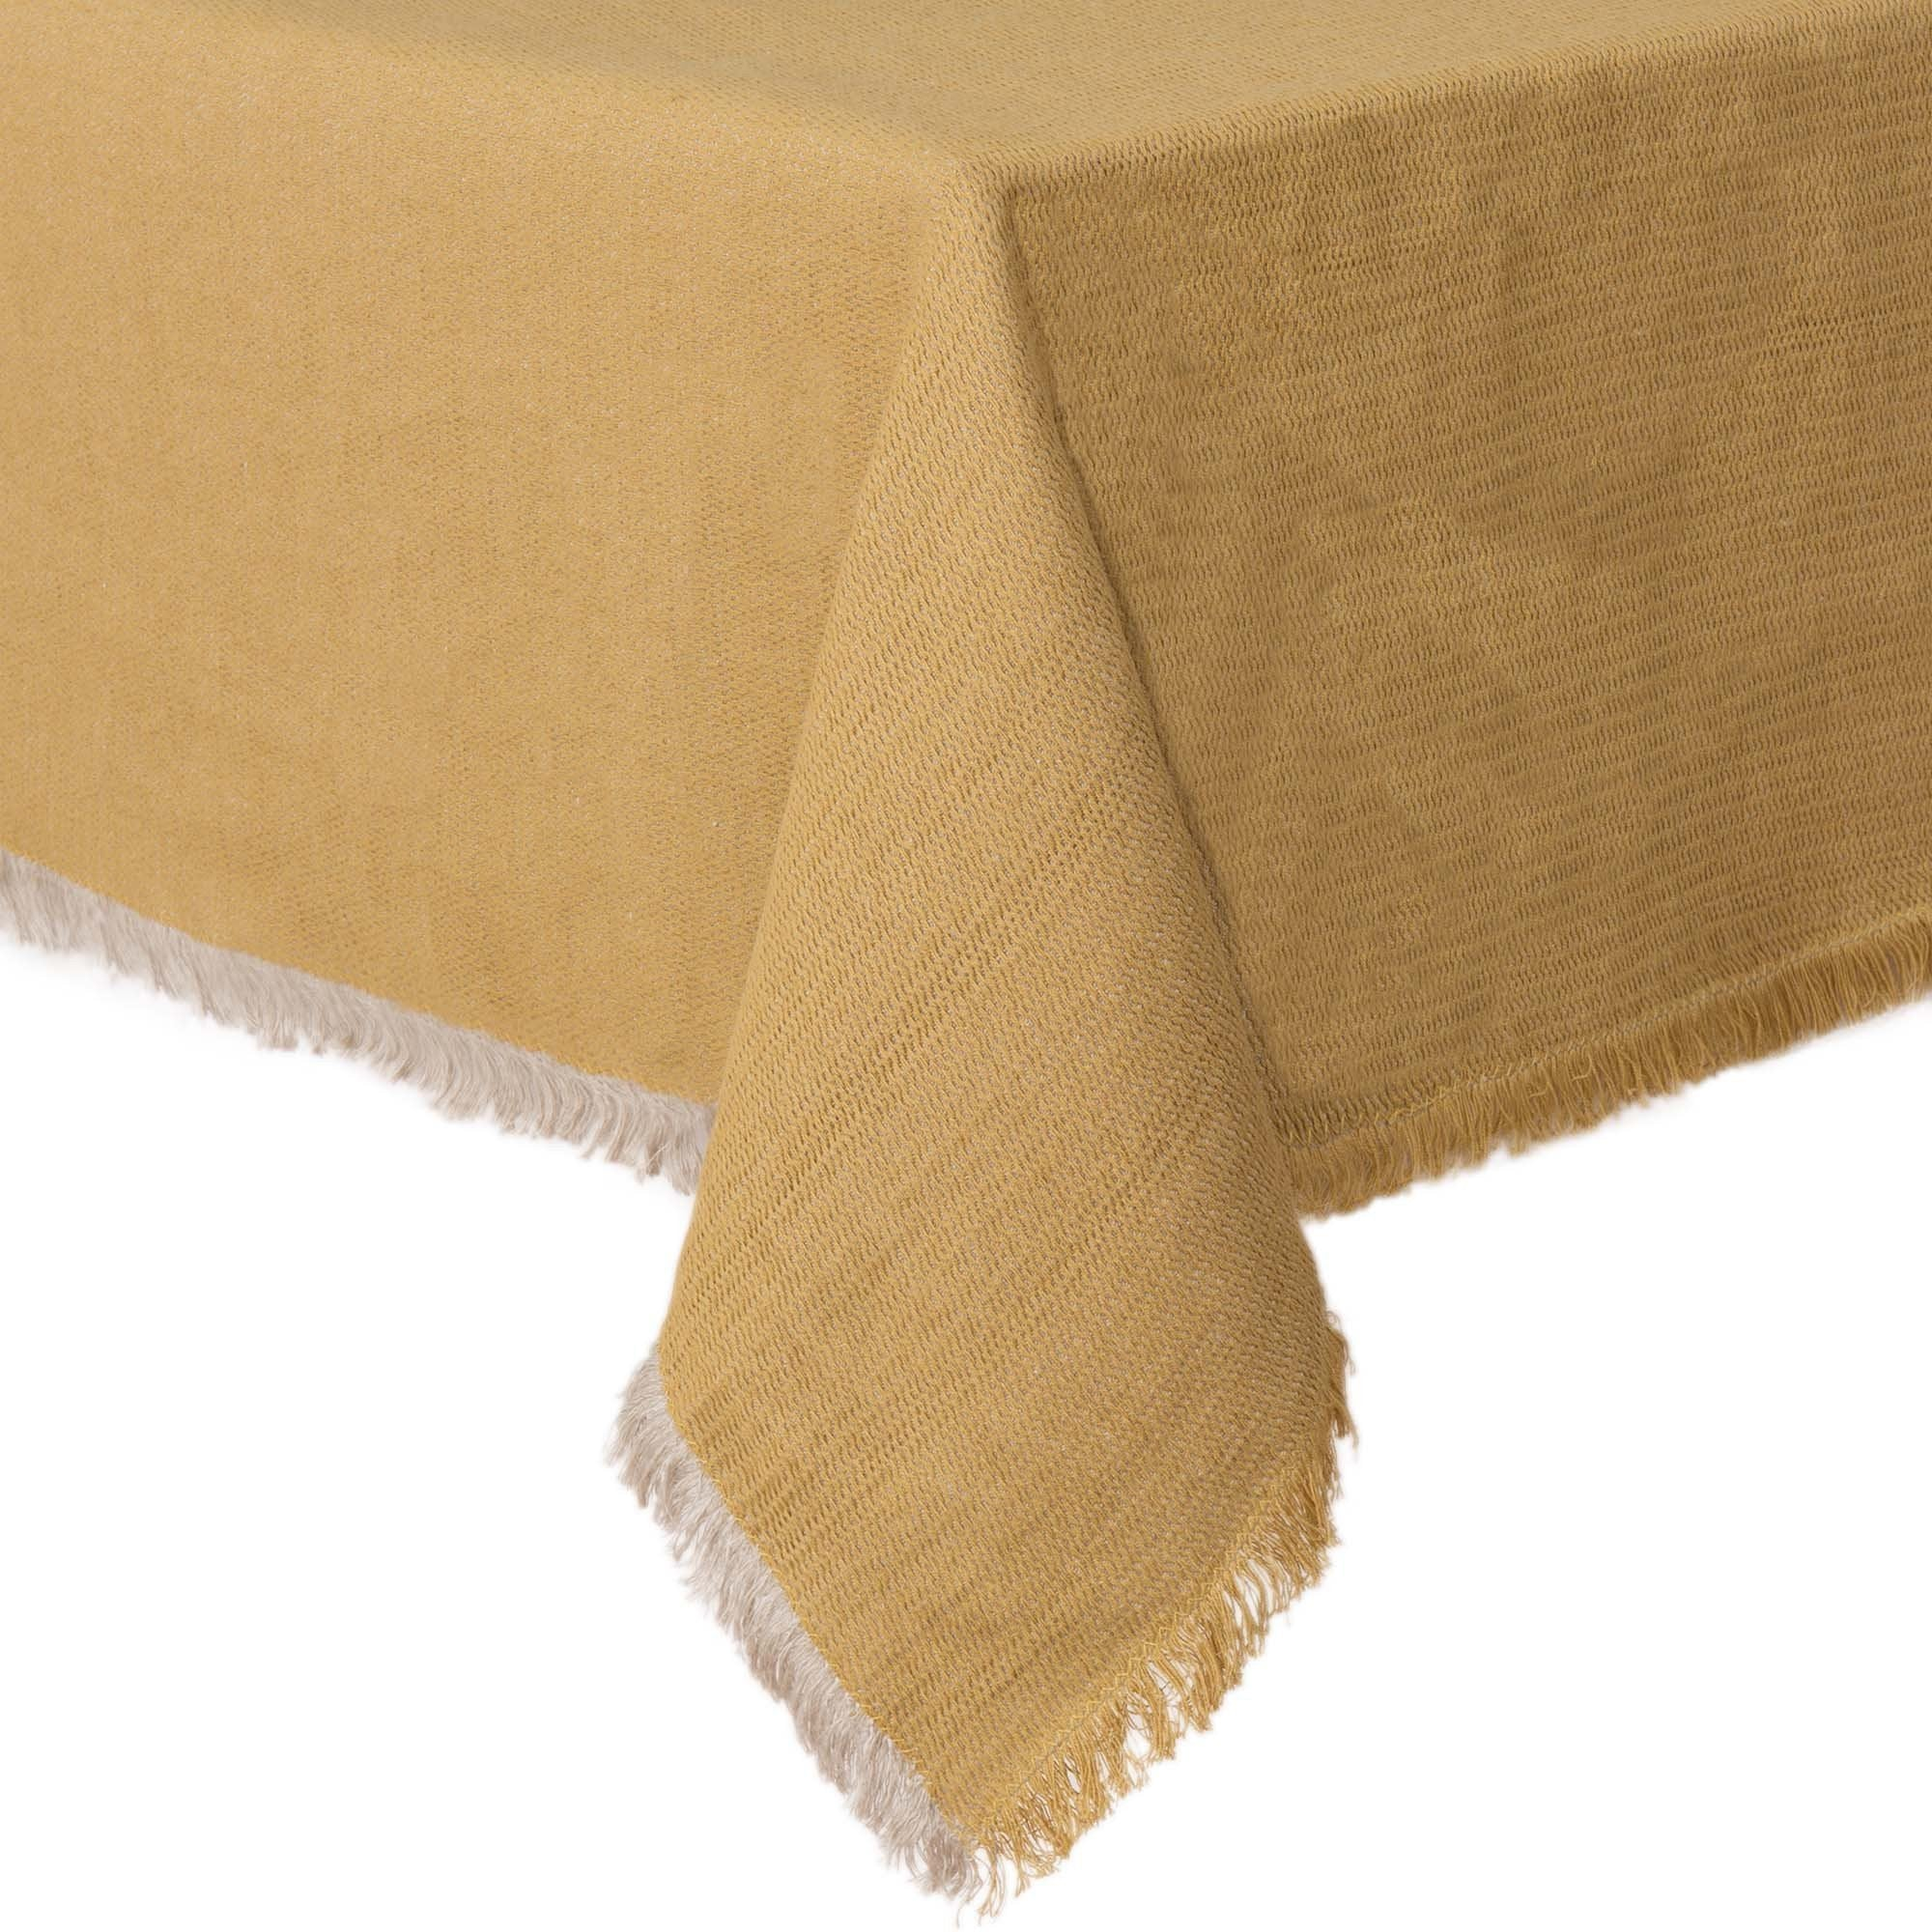 Alkas table cloth, ochre & stone grey, 50% linen & 50% cotton